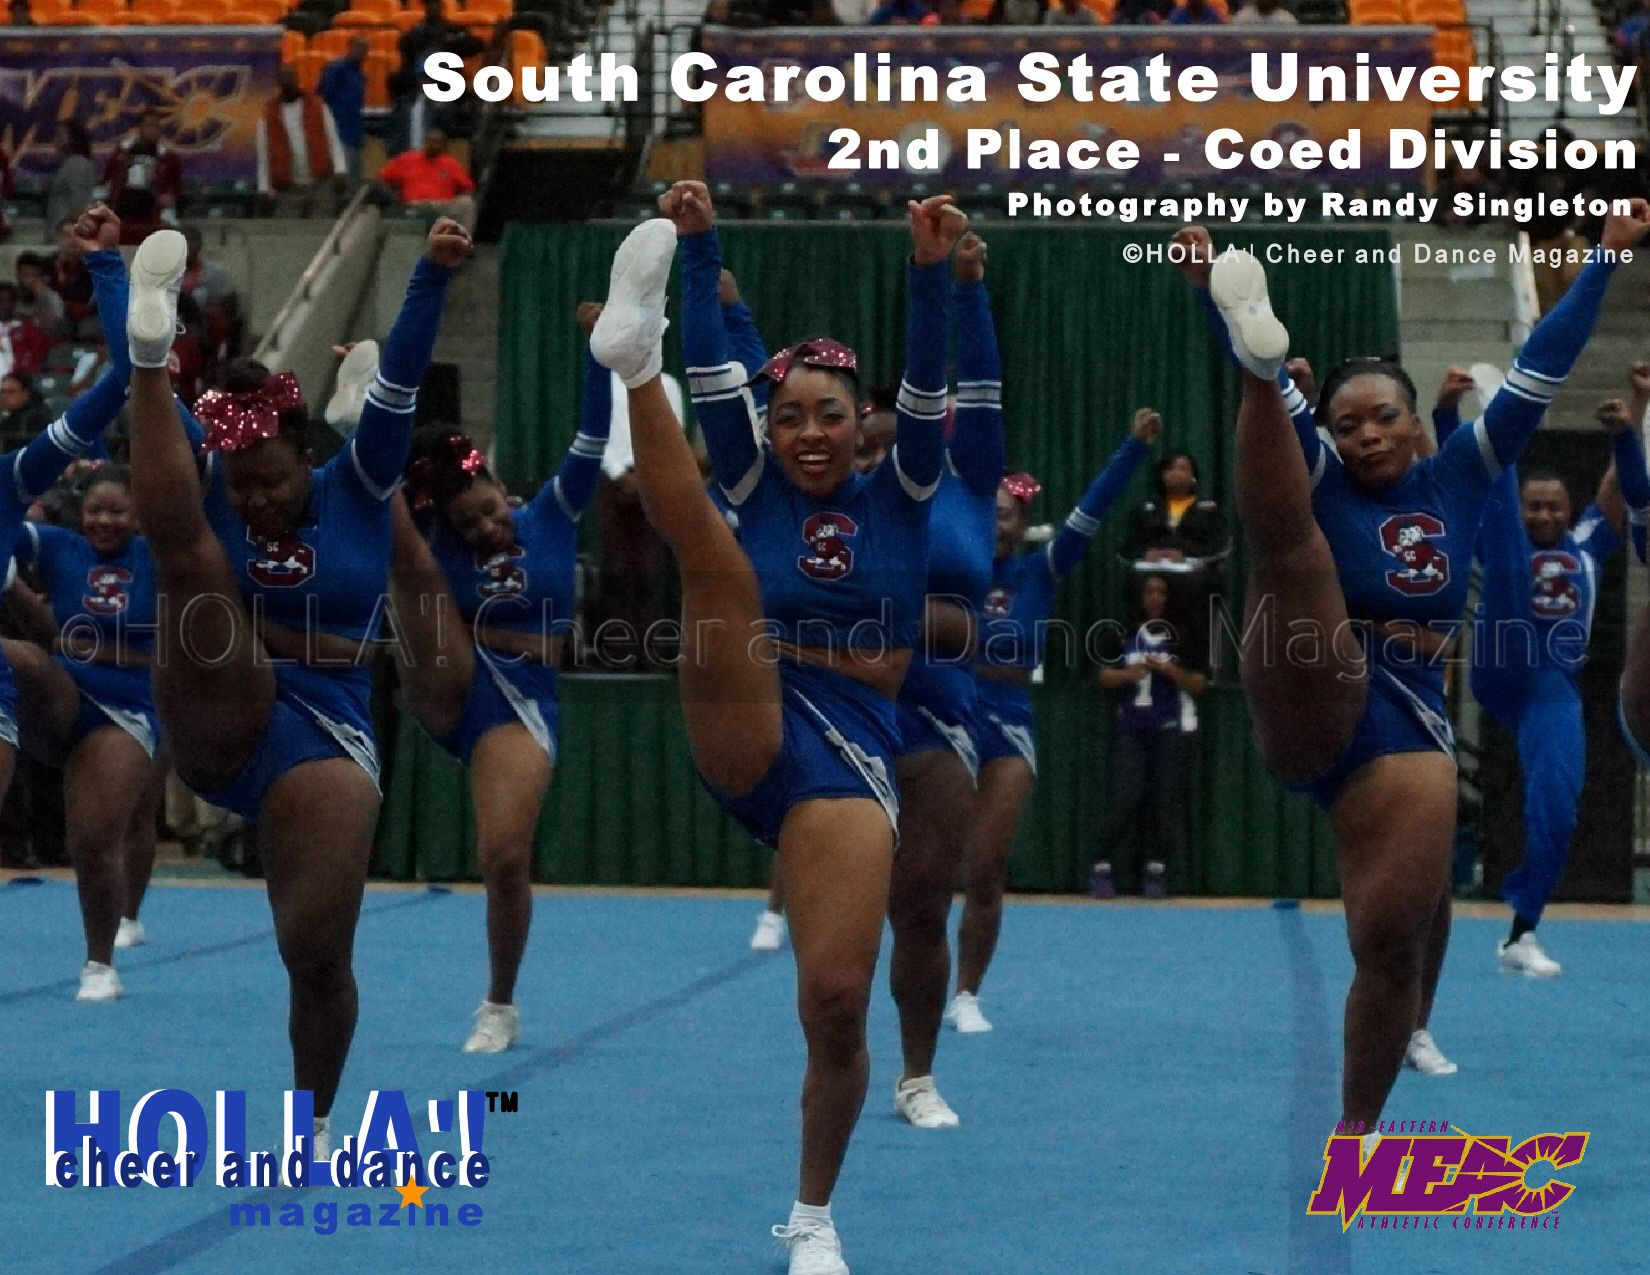 South Carolina State University See More Meac Cheerleading Competition Pictures At Www Hollacheerdancem Cheerleading Competition College Cheer Dance Magazine